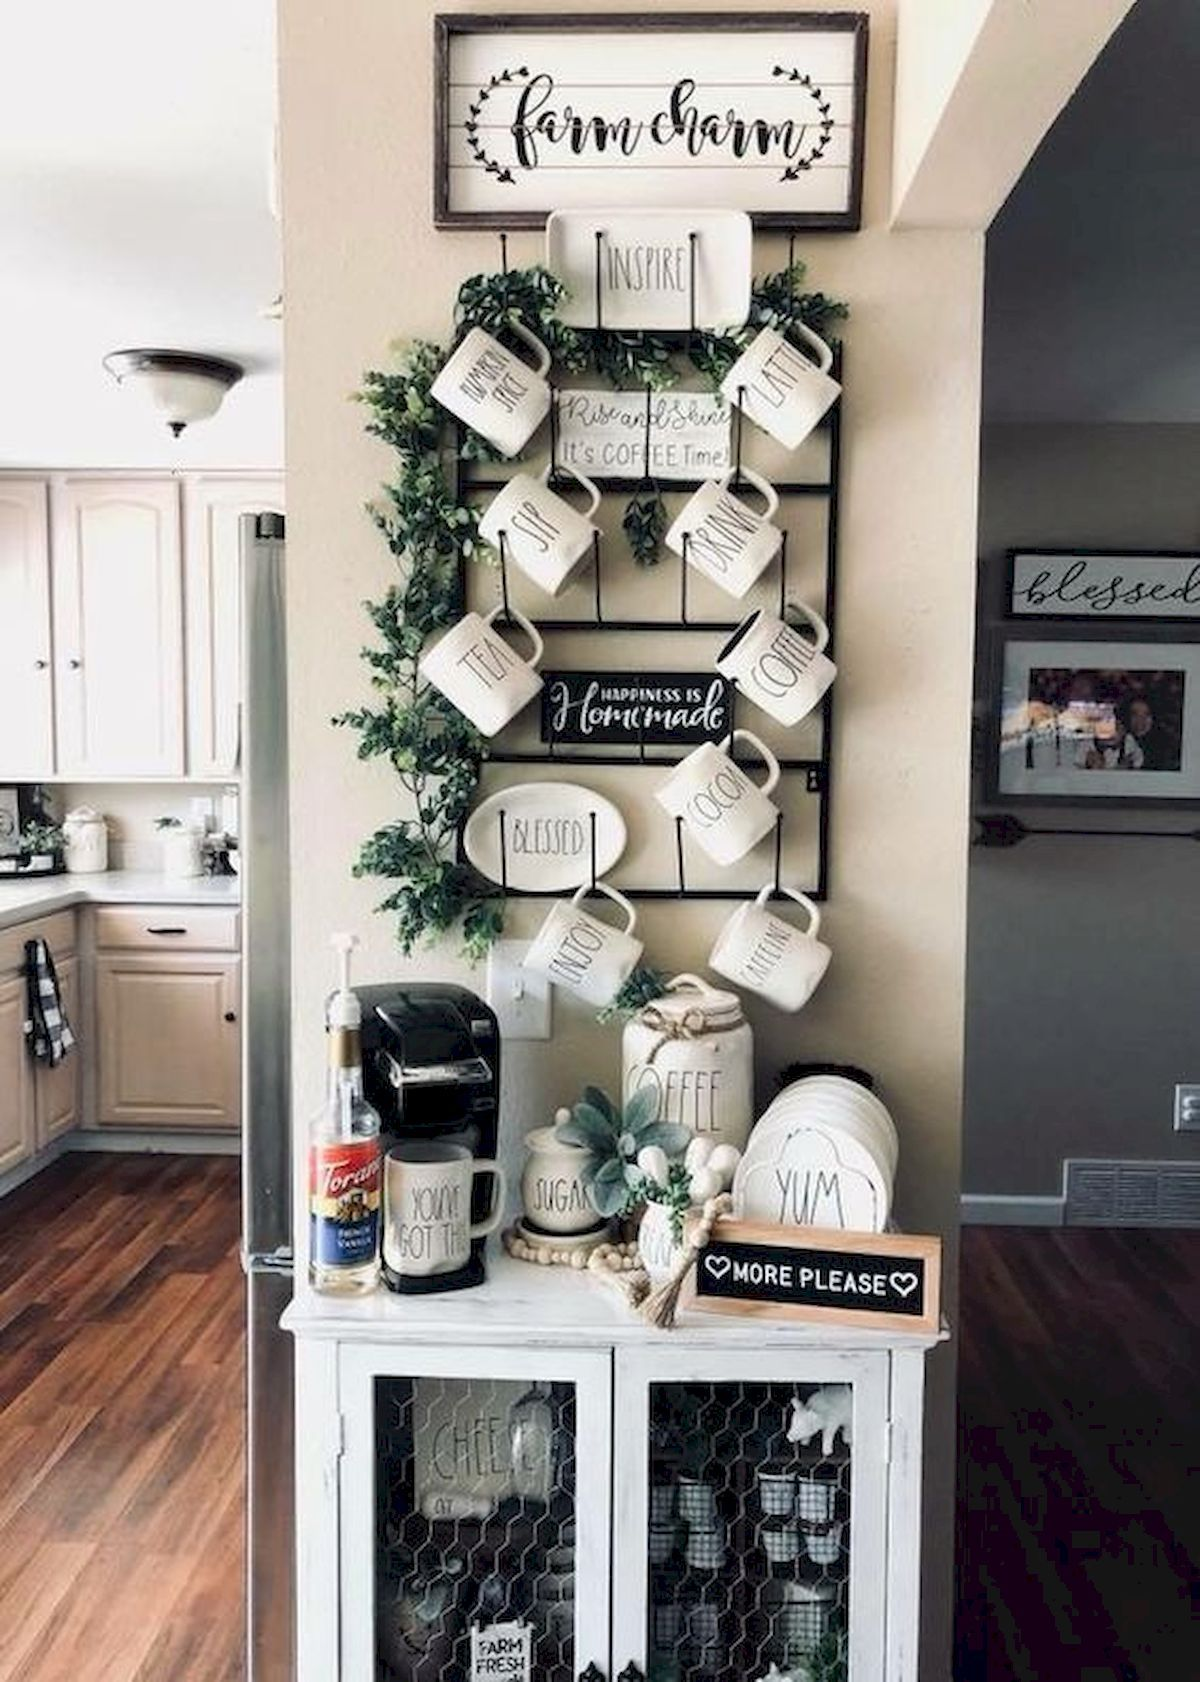 33 Awesome Farmhouse Small Apartment Decor Ideas And Design images